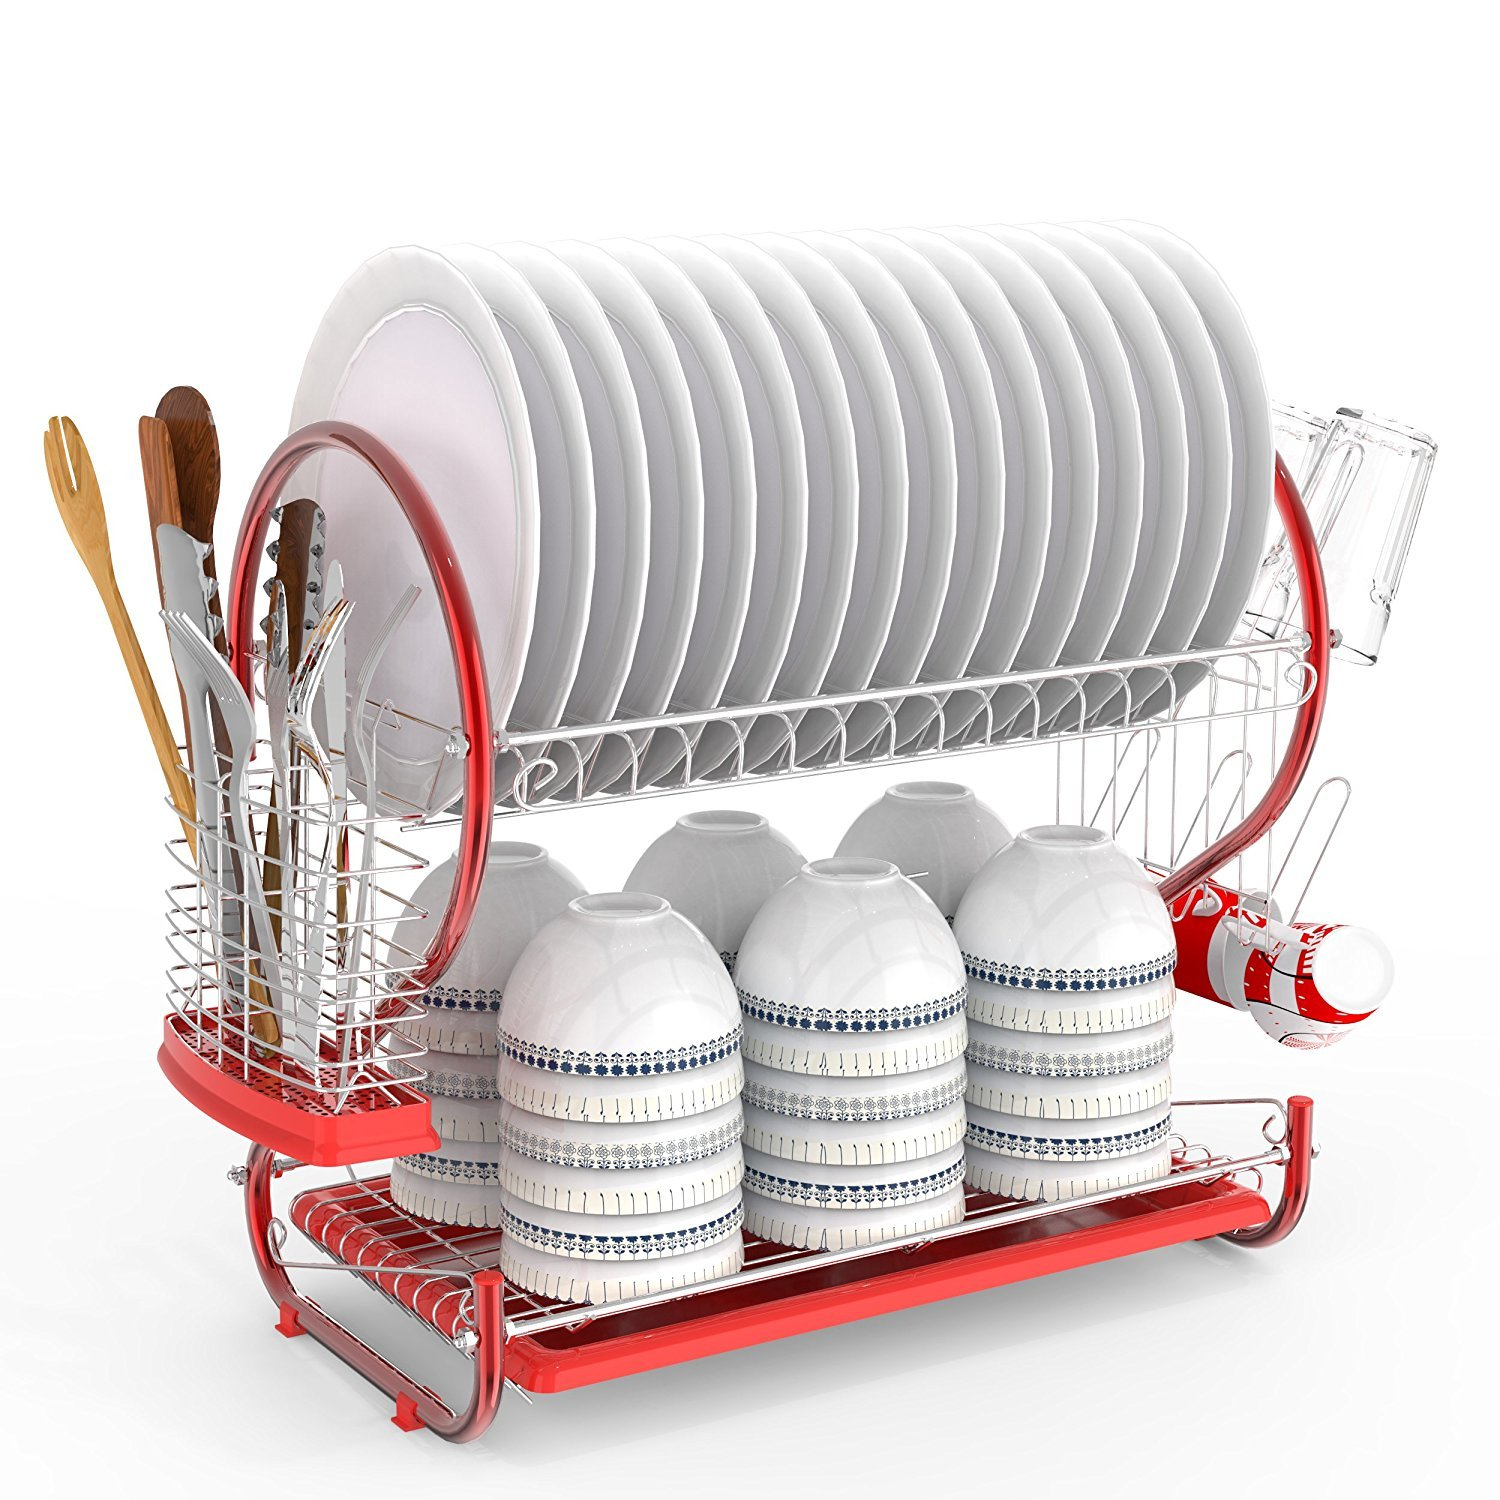 Simlive 2 Tier Dish Drainer Chrome Plated Stainless Steel Dish Rack with Tray and Cutlery Drainer for Kitchen Organization (Red)